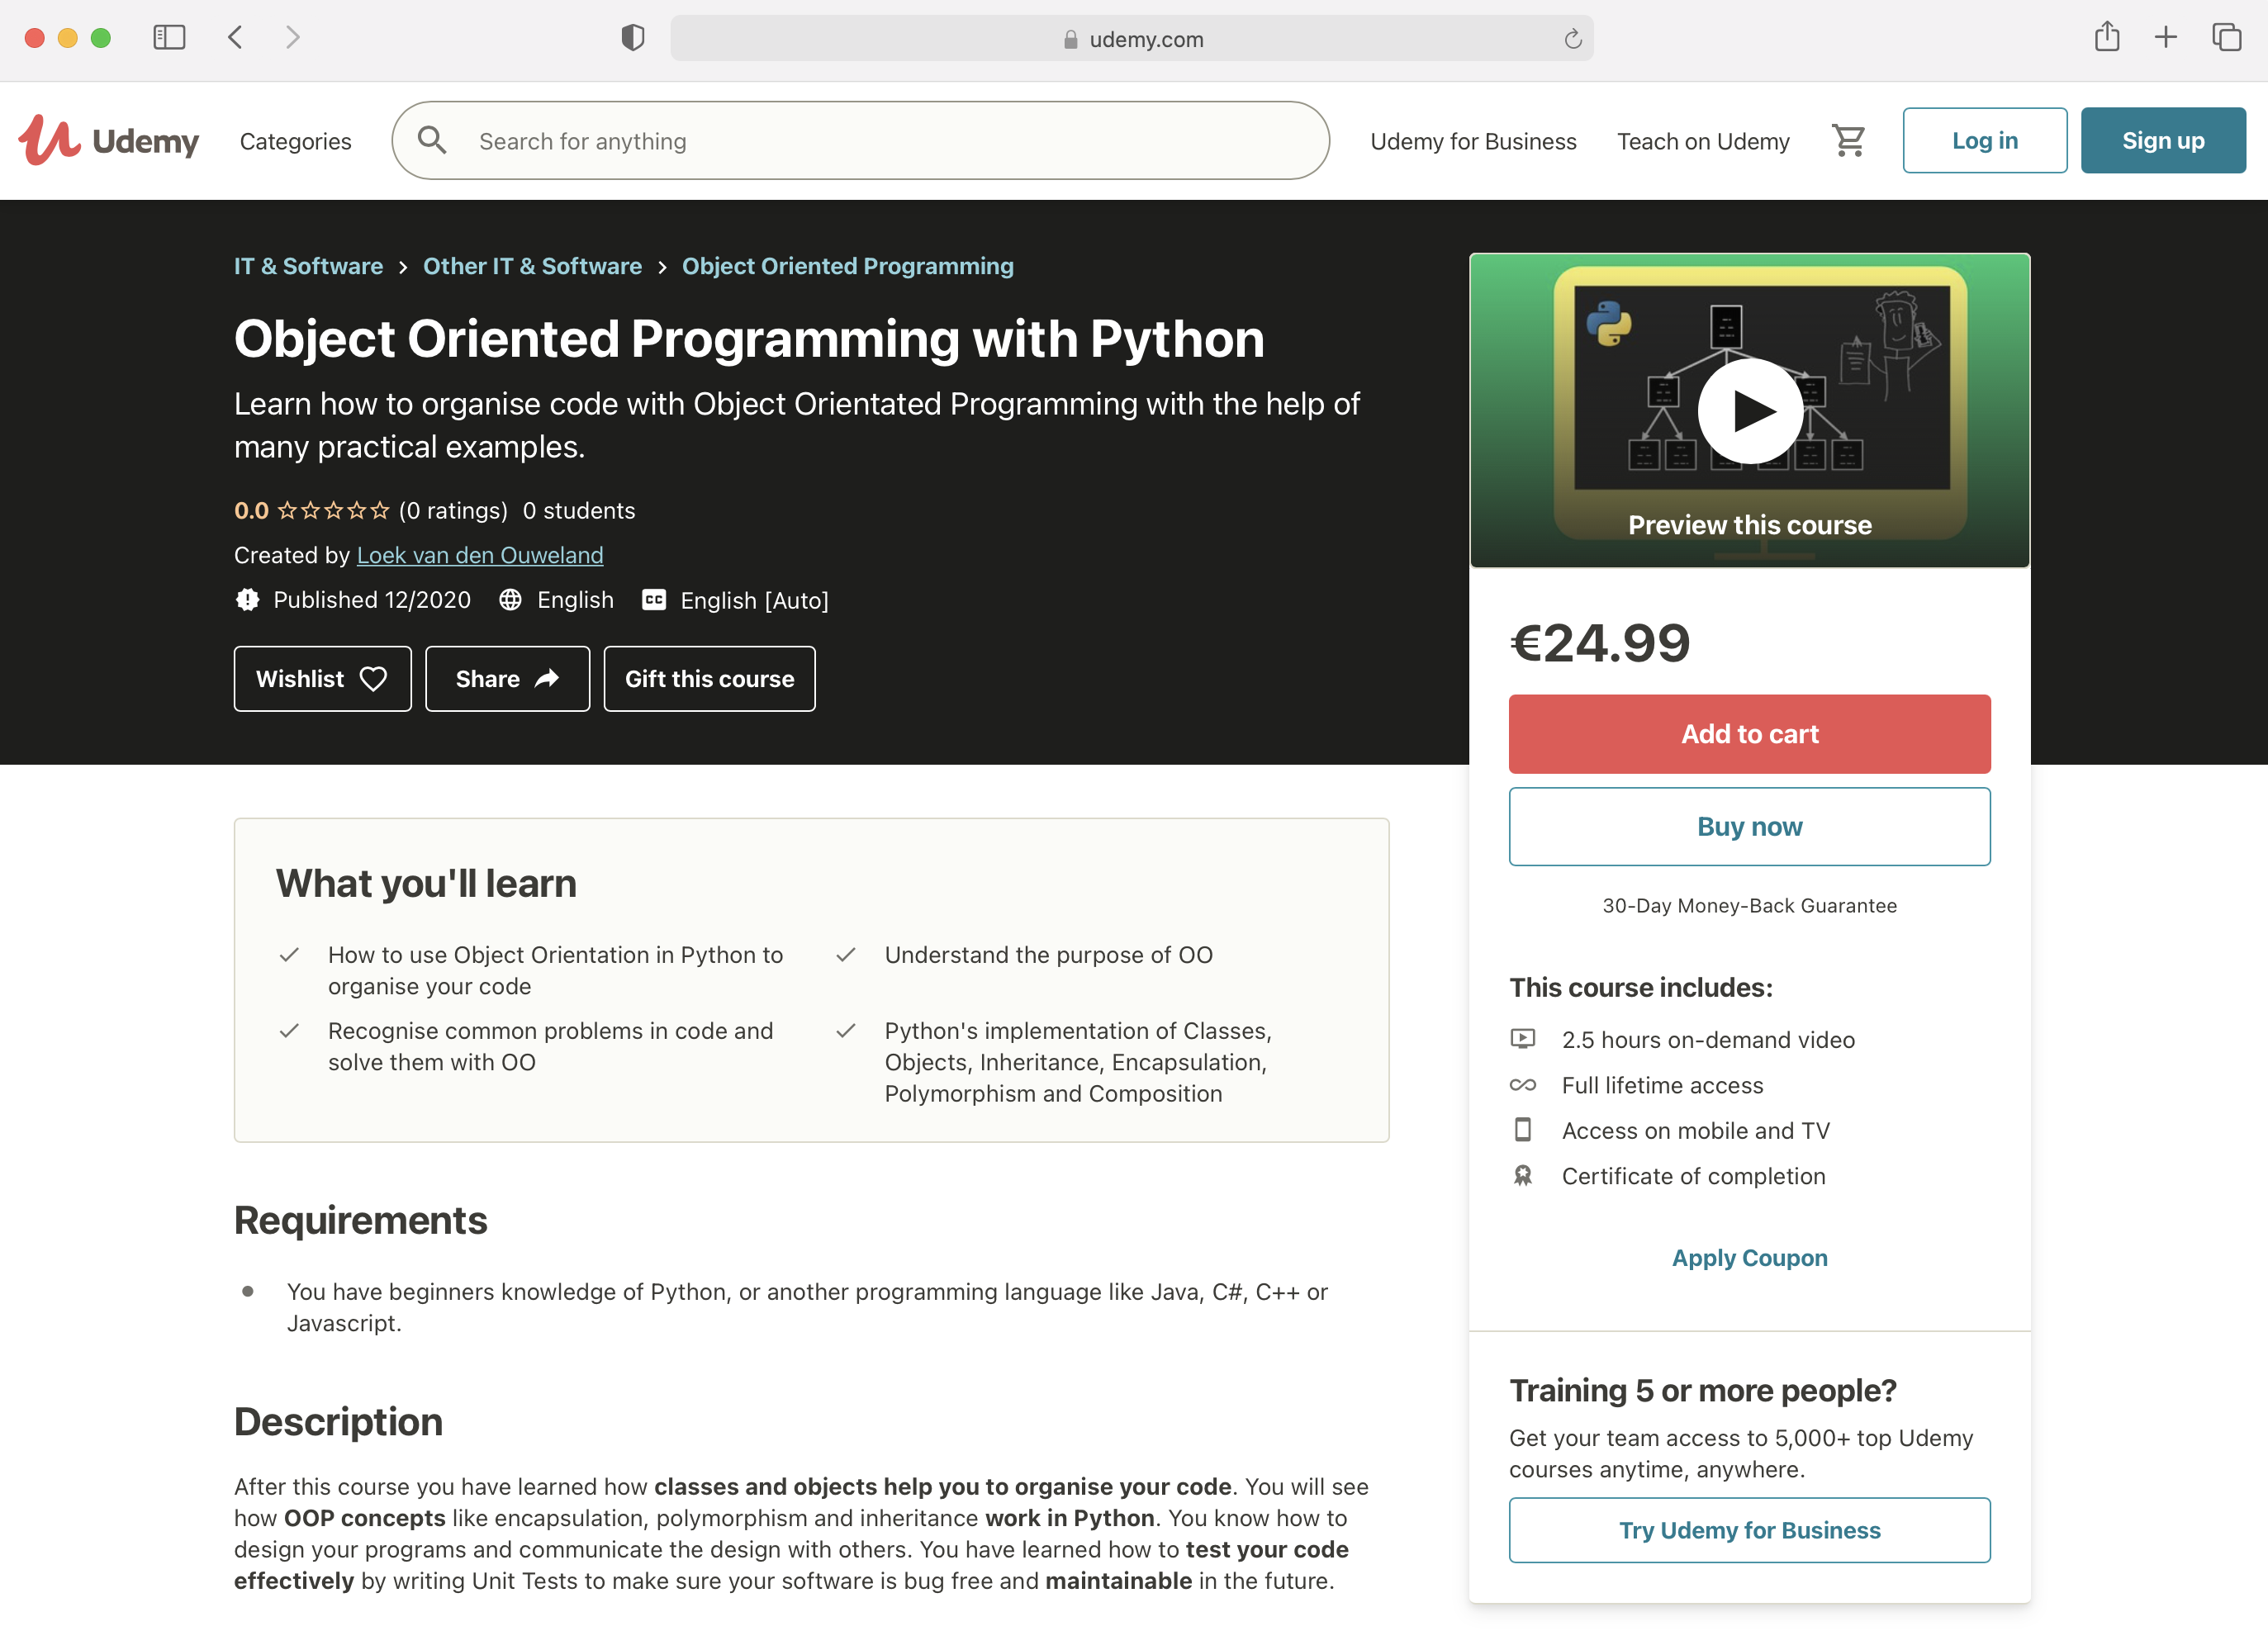 Object oriented programming in Python on Udemy